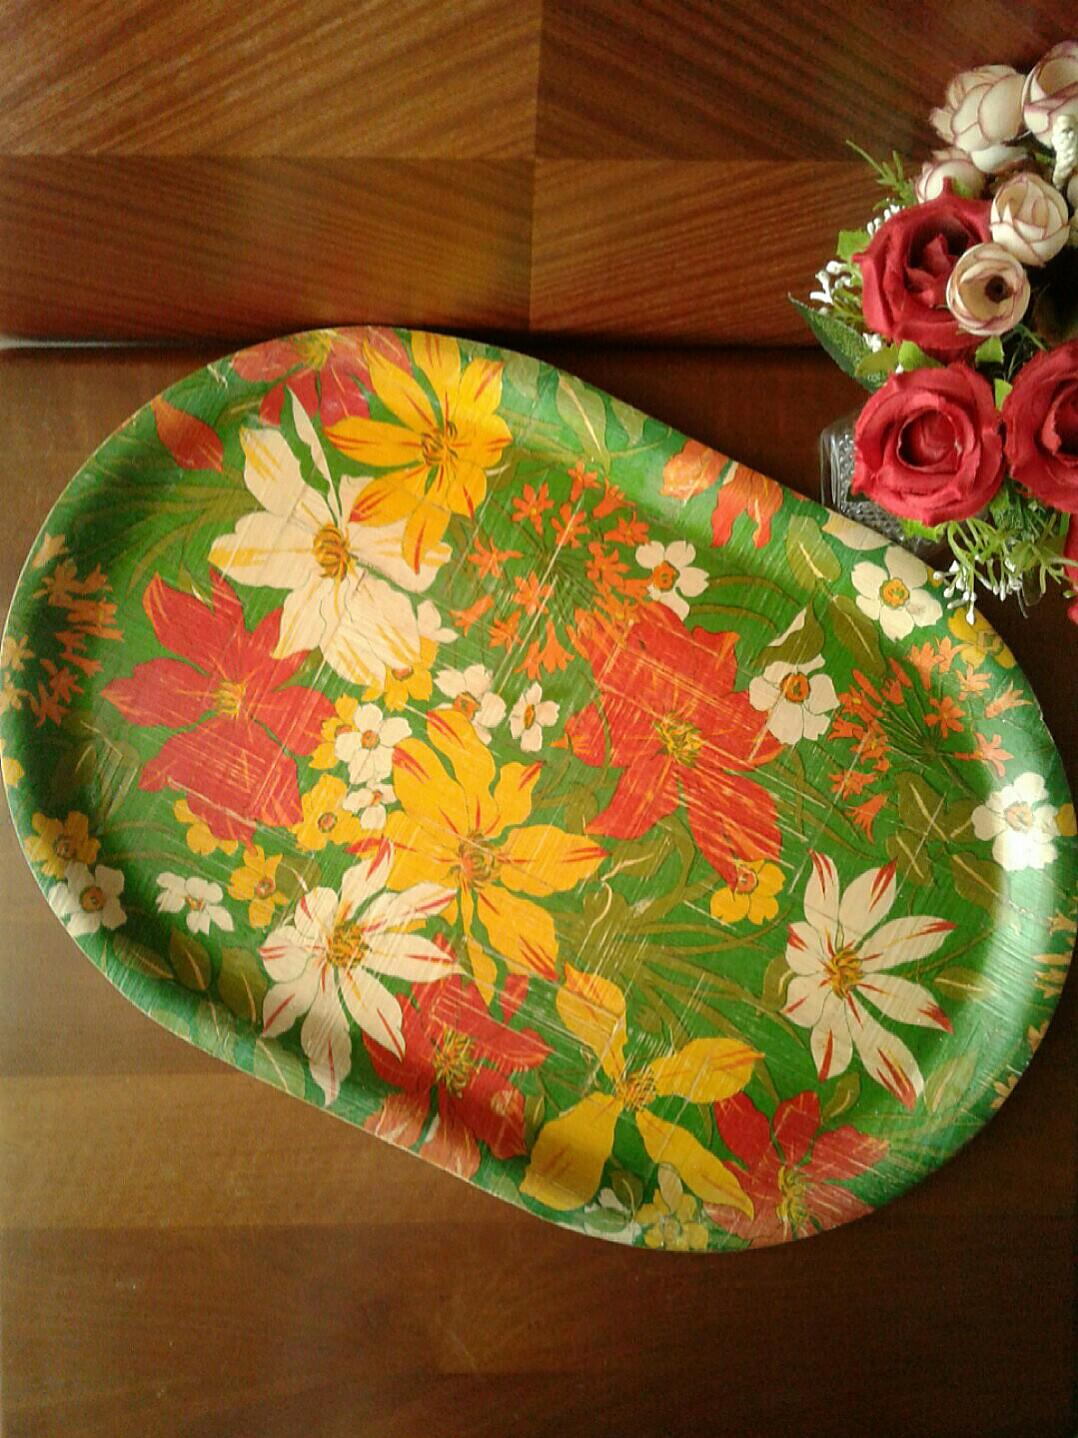 Vintage Bamboo Serving Tray Vintage Collectibles Vintage Collectibles On Carousell